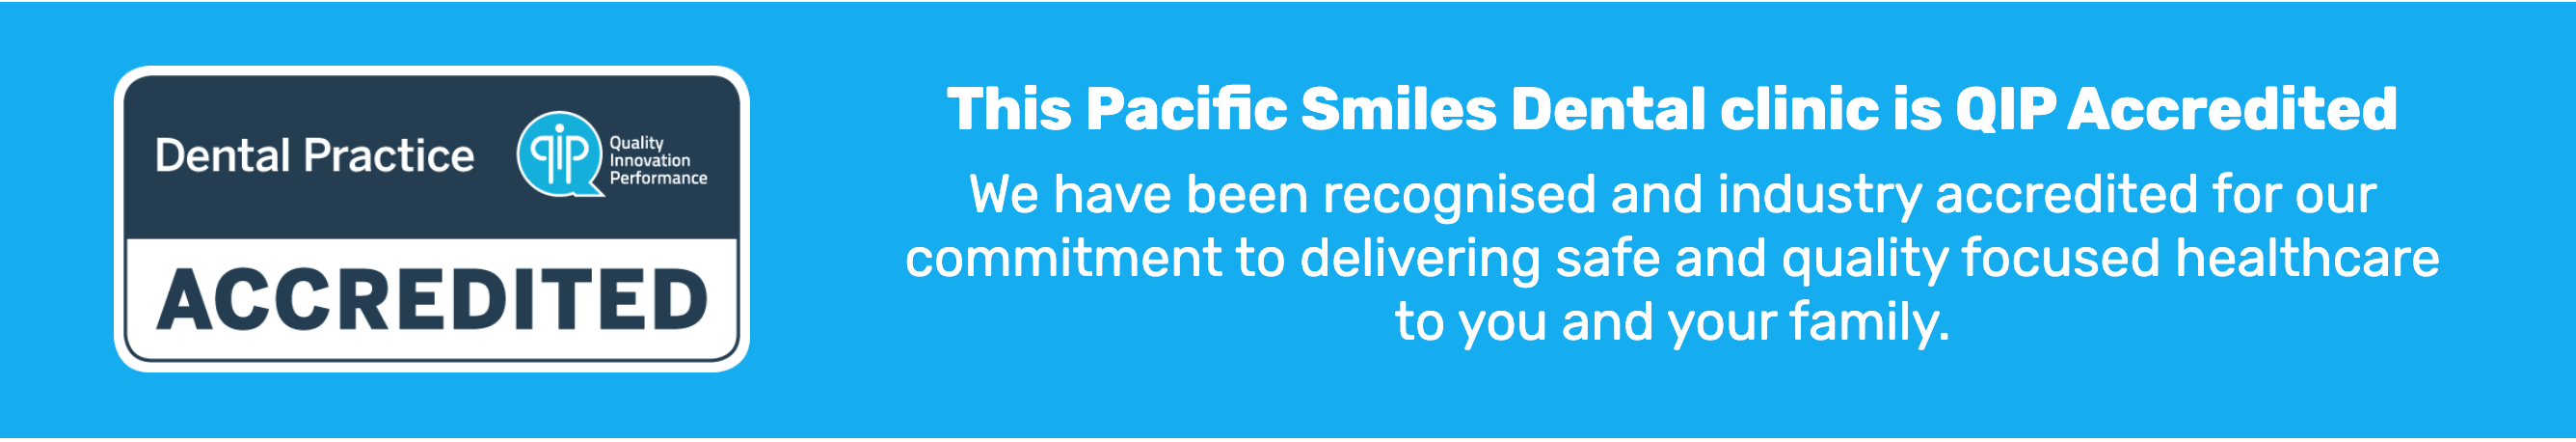 Pacific Smiles Dental, Epping